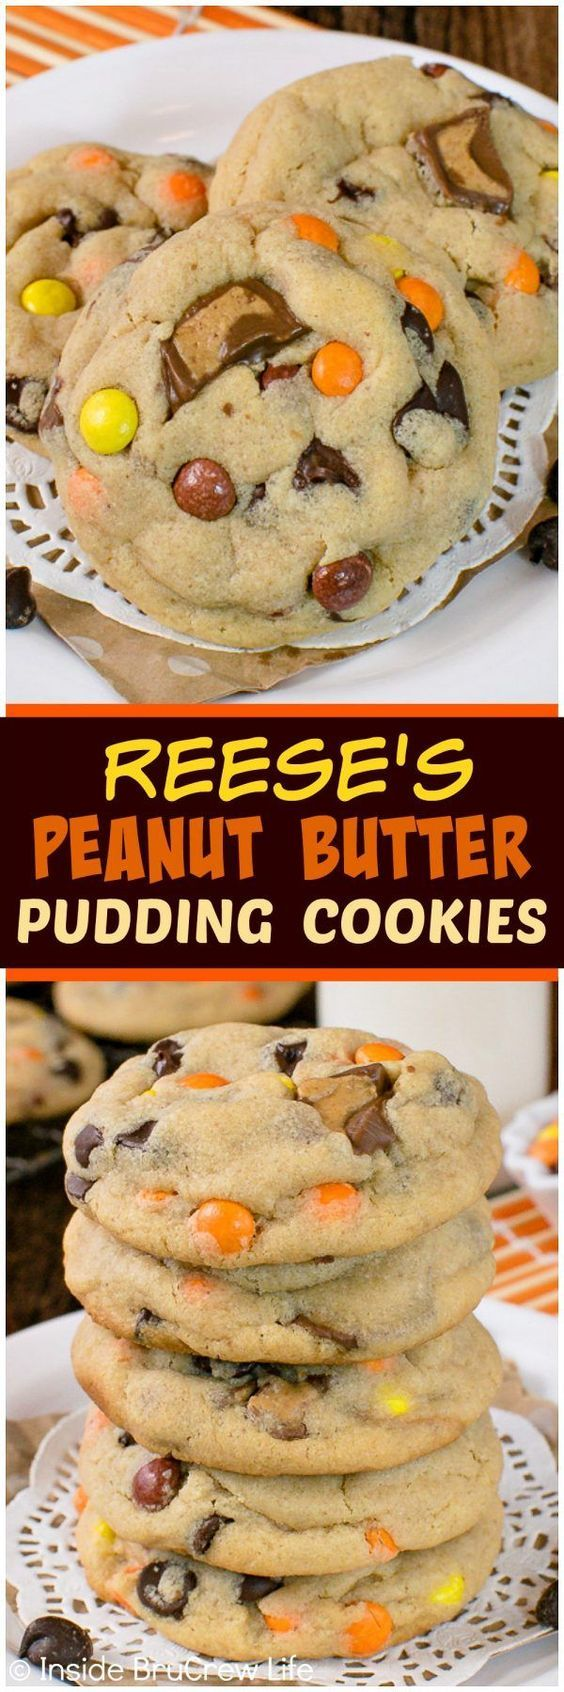 Reeses Peanut Butter Pudding Cookies – this soft and chewy cookie recipe is loaded with chocolate and candy! Great dessert to fill